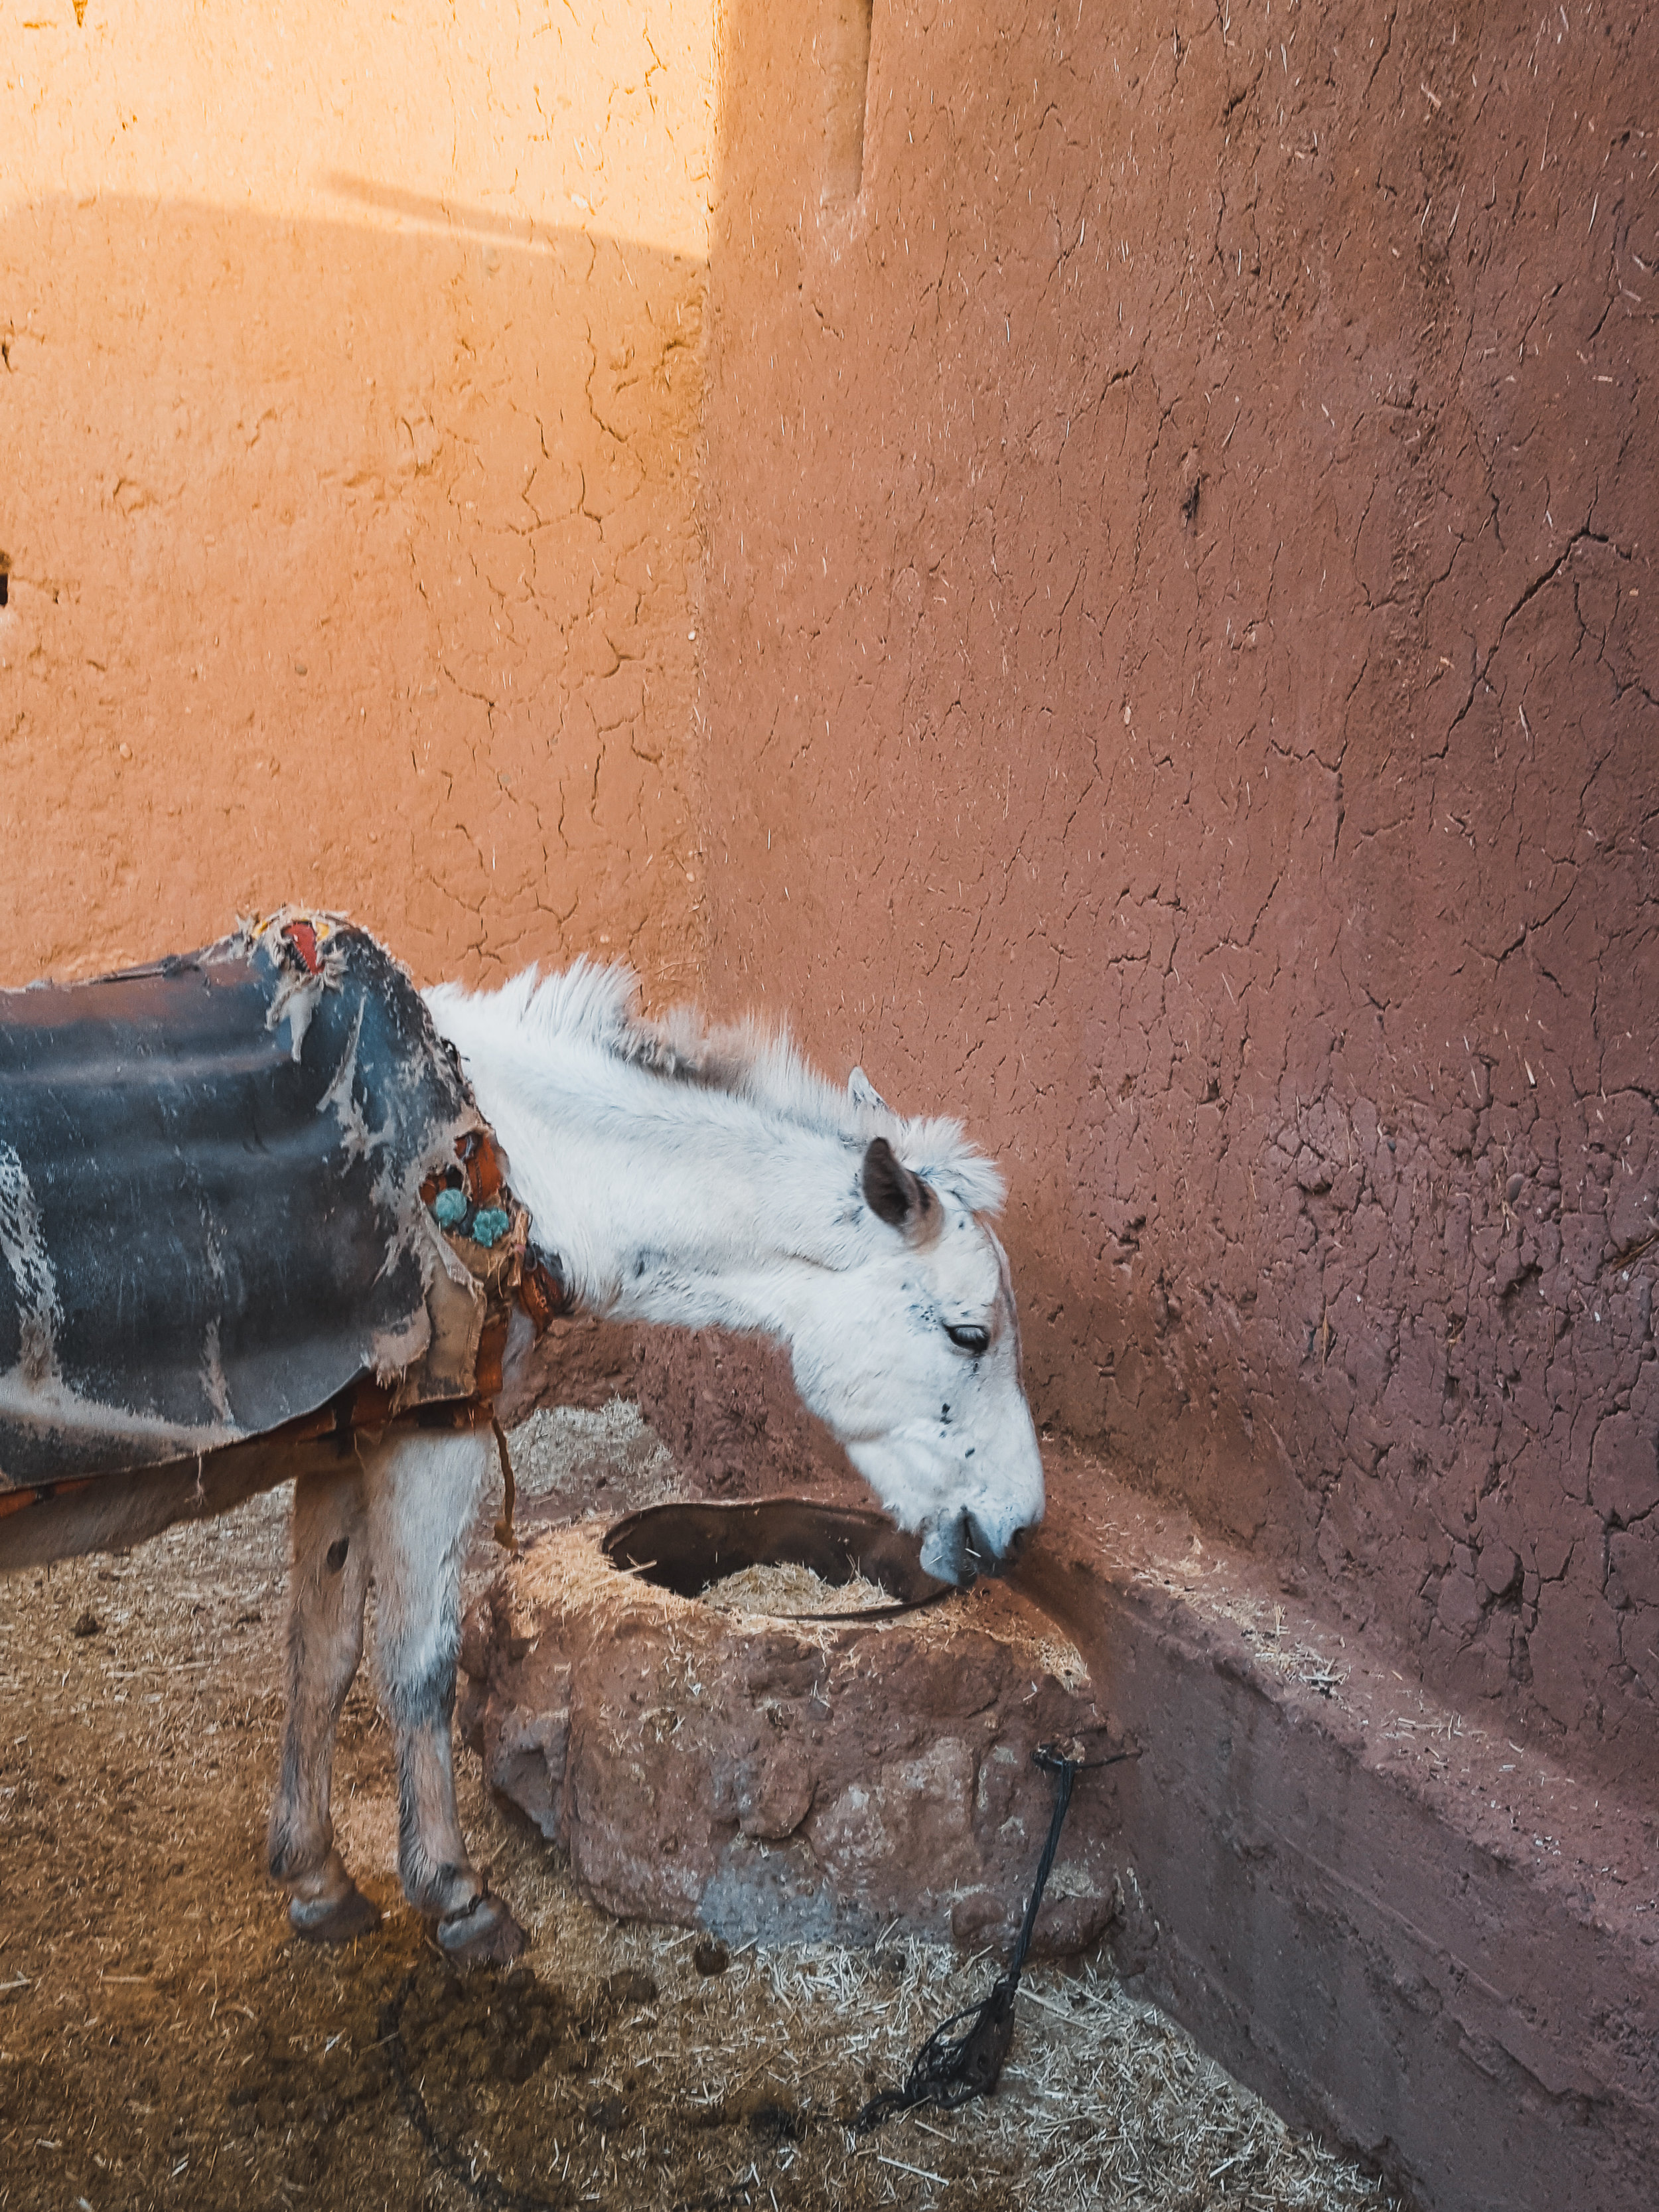 Donkeys are often used to transport goods in Morocco - we found this cutie at Ait Benhaddou